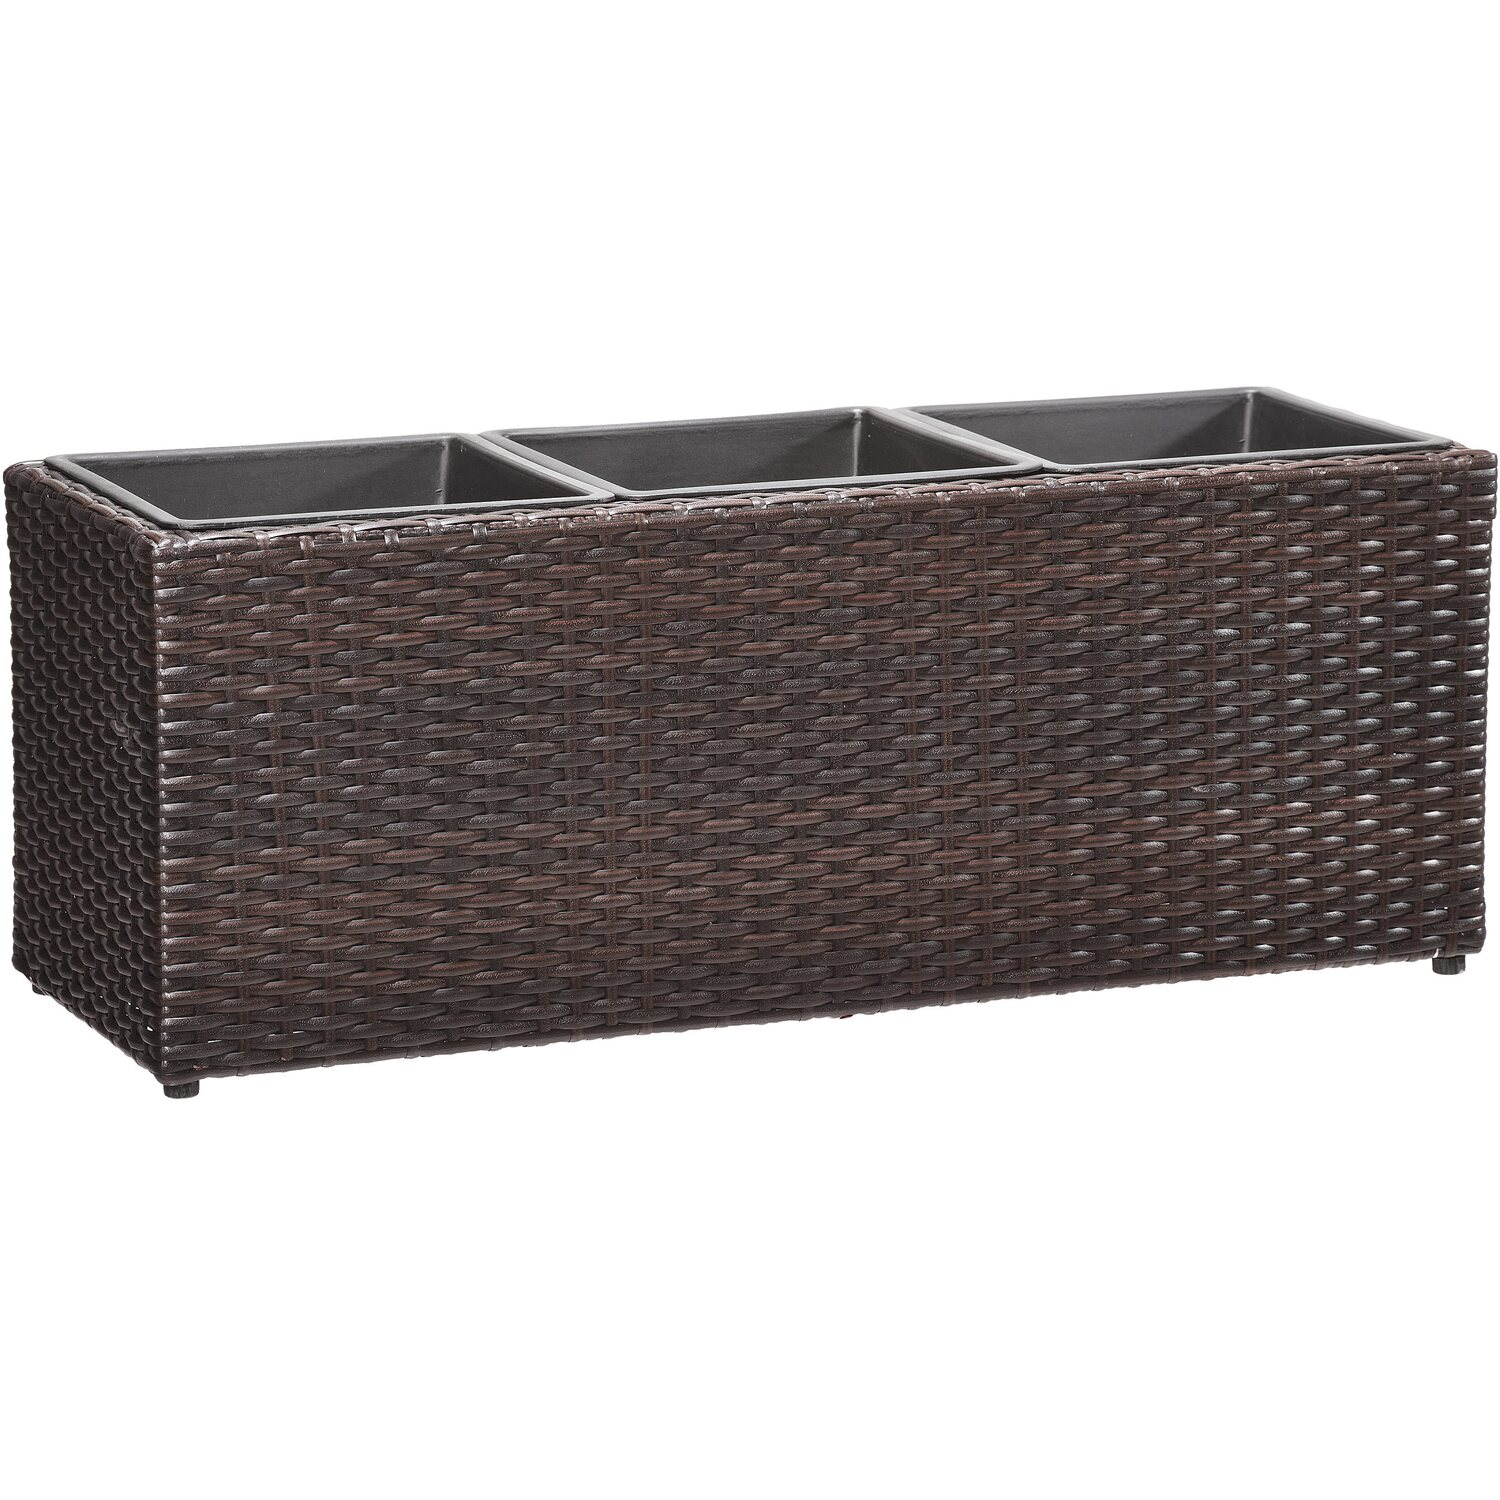 gartenfreude pflanzk bel polyrattan 76 cm x 26 cm bicolour braun kaufen bei obi. Black Bedroom Furniture Sets. Home Design Ideas